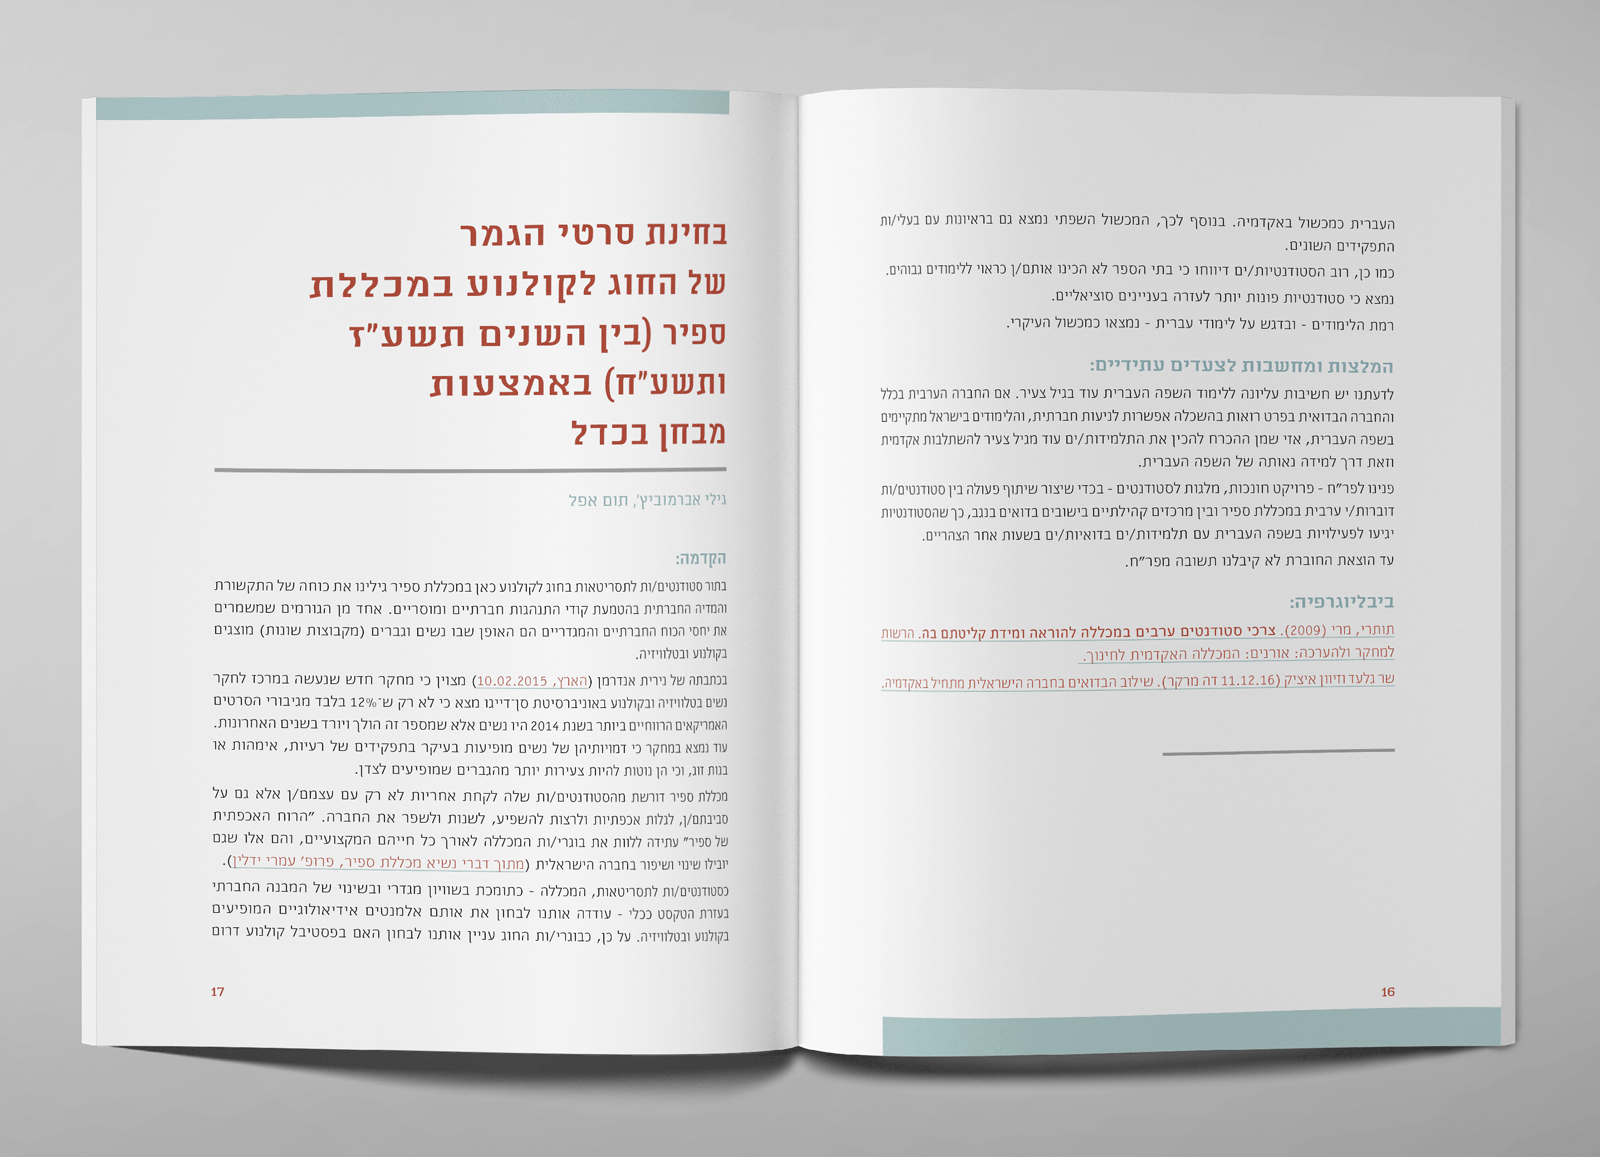 http://bigeyes.co.il/wp-content/uploads/2019/07/adva-gender18-7.png